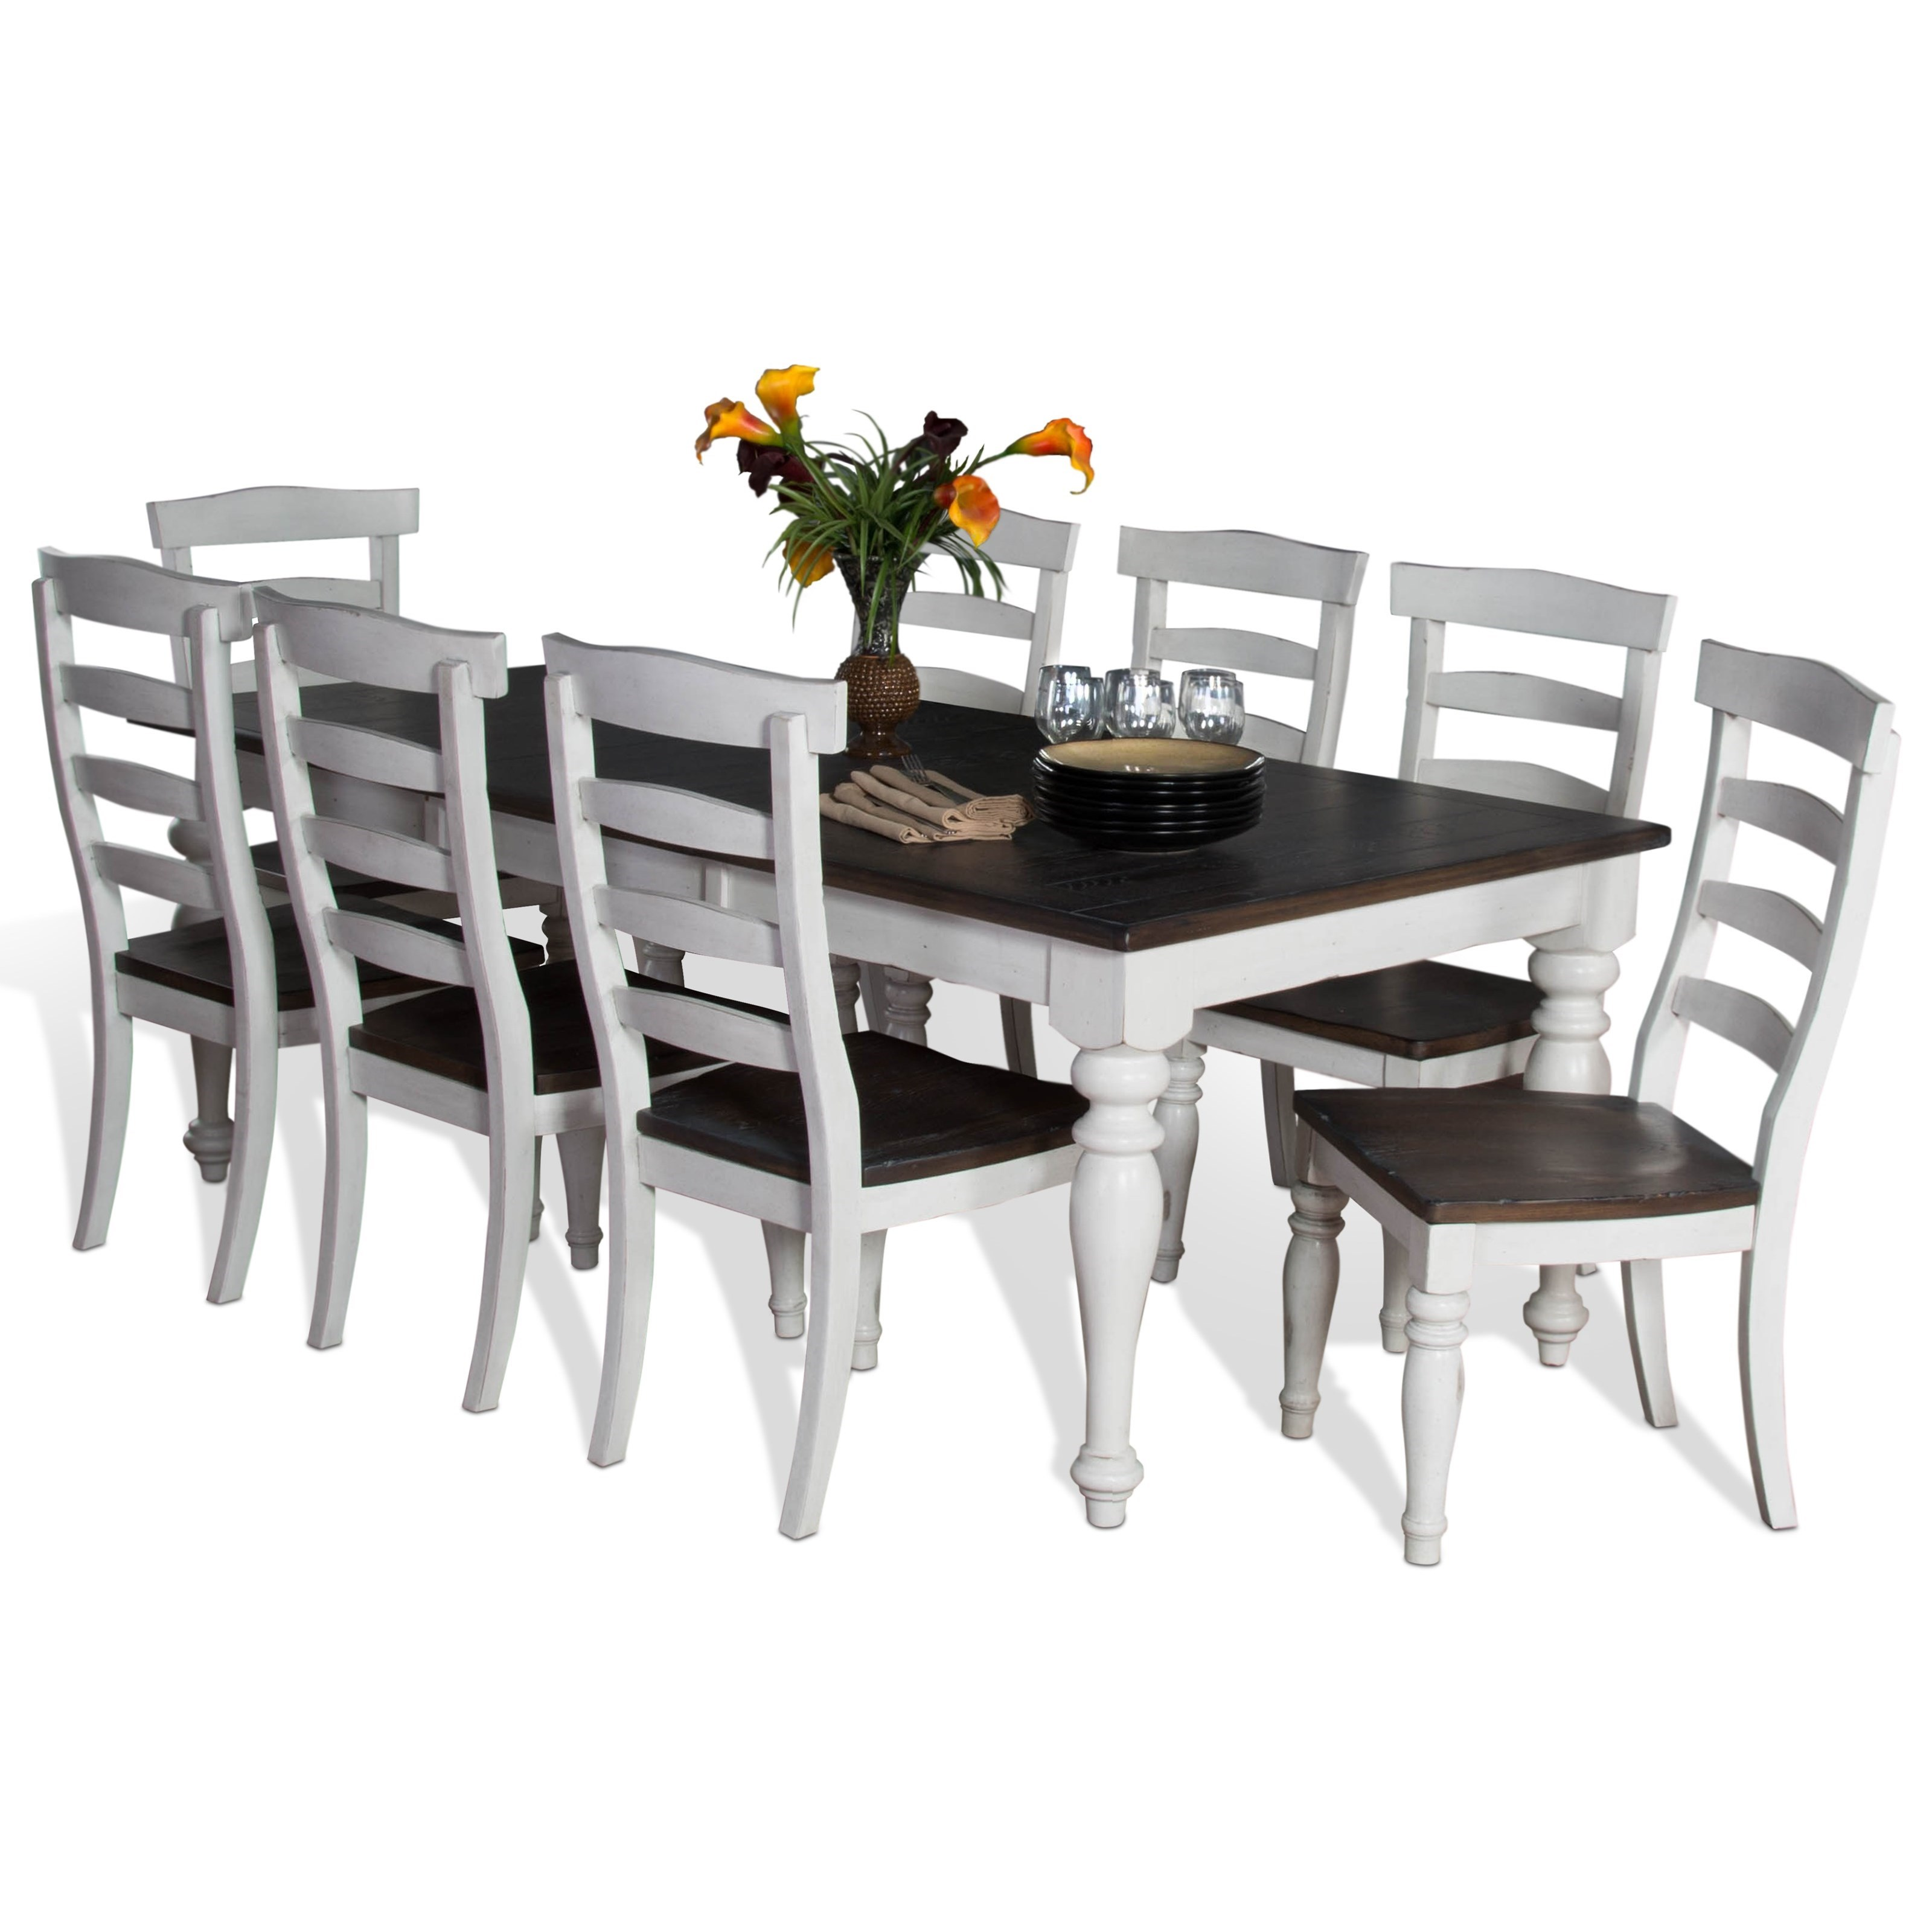 9 piece extension dining table set with ladderback chairs. Black Bedroom Furniture Sets. Home Design Ideas